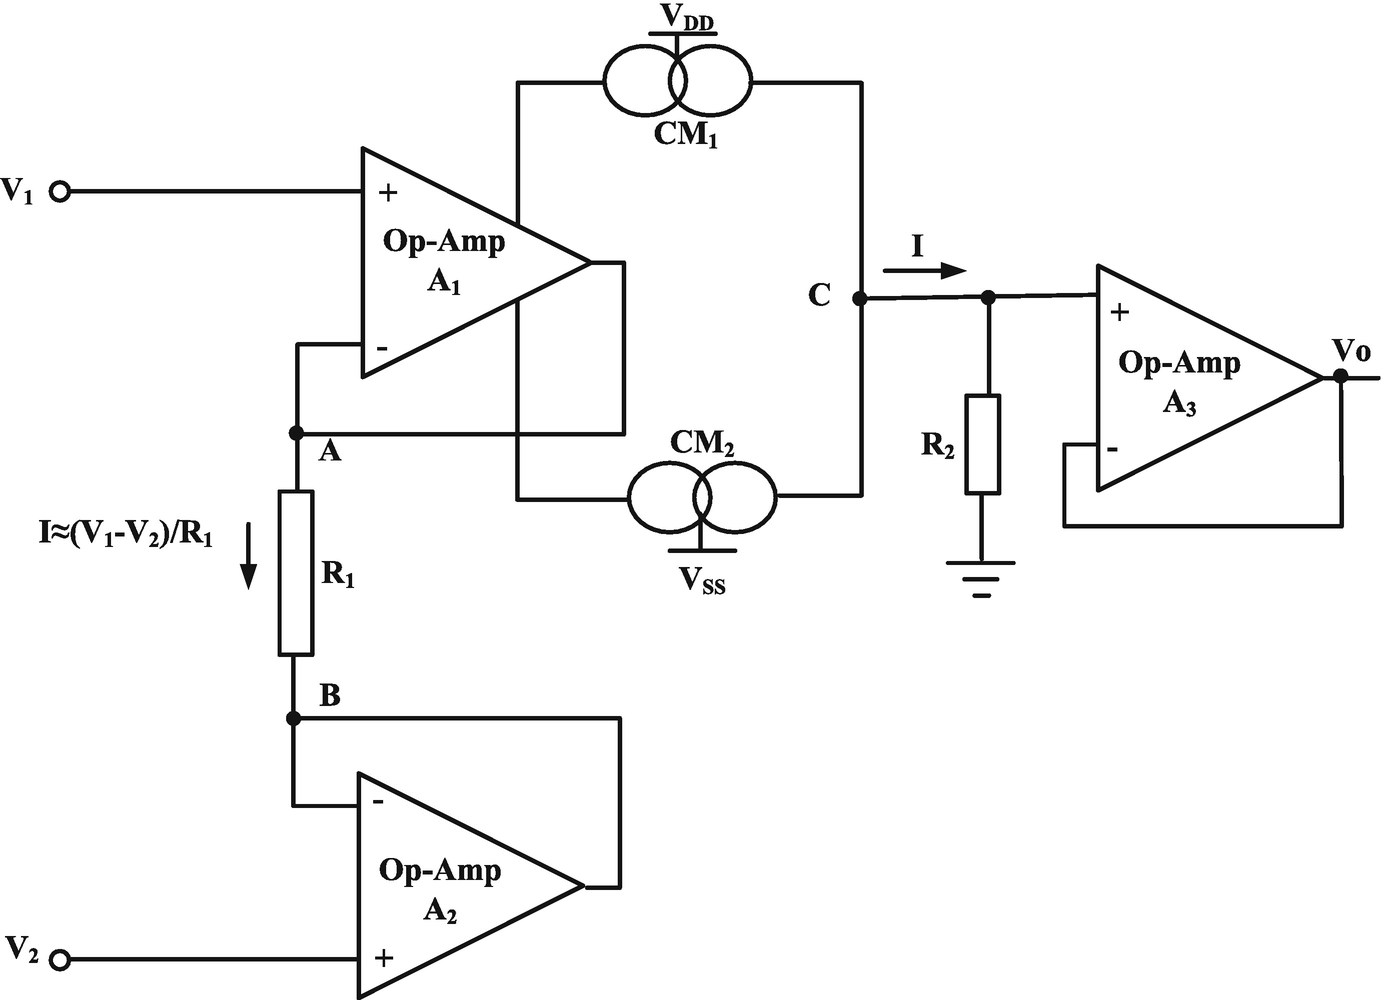 Cmia Based On Op Amp Power Supply Current Sensing Technique Difficulty Solving Problem Electrical Engineering Open Image In New Window Fig 24 First Generation